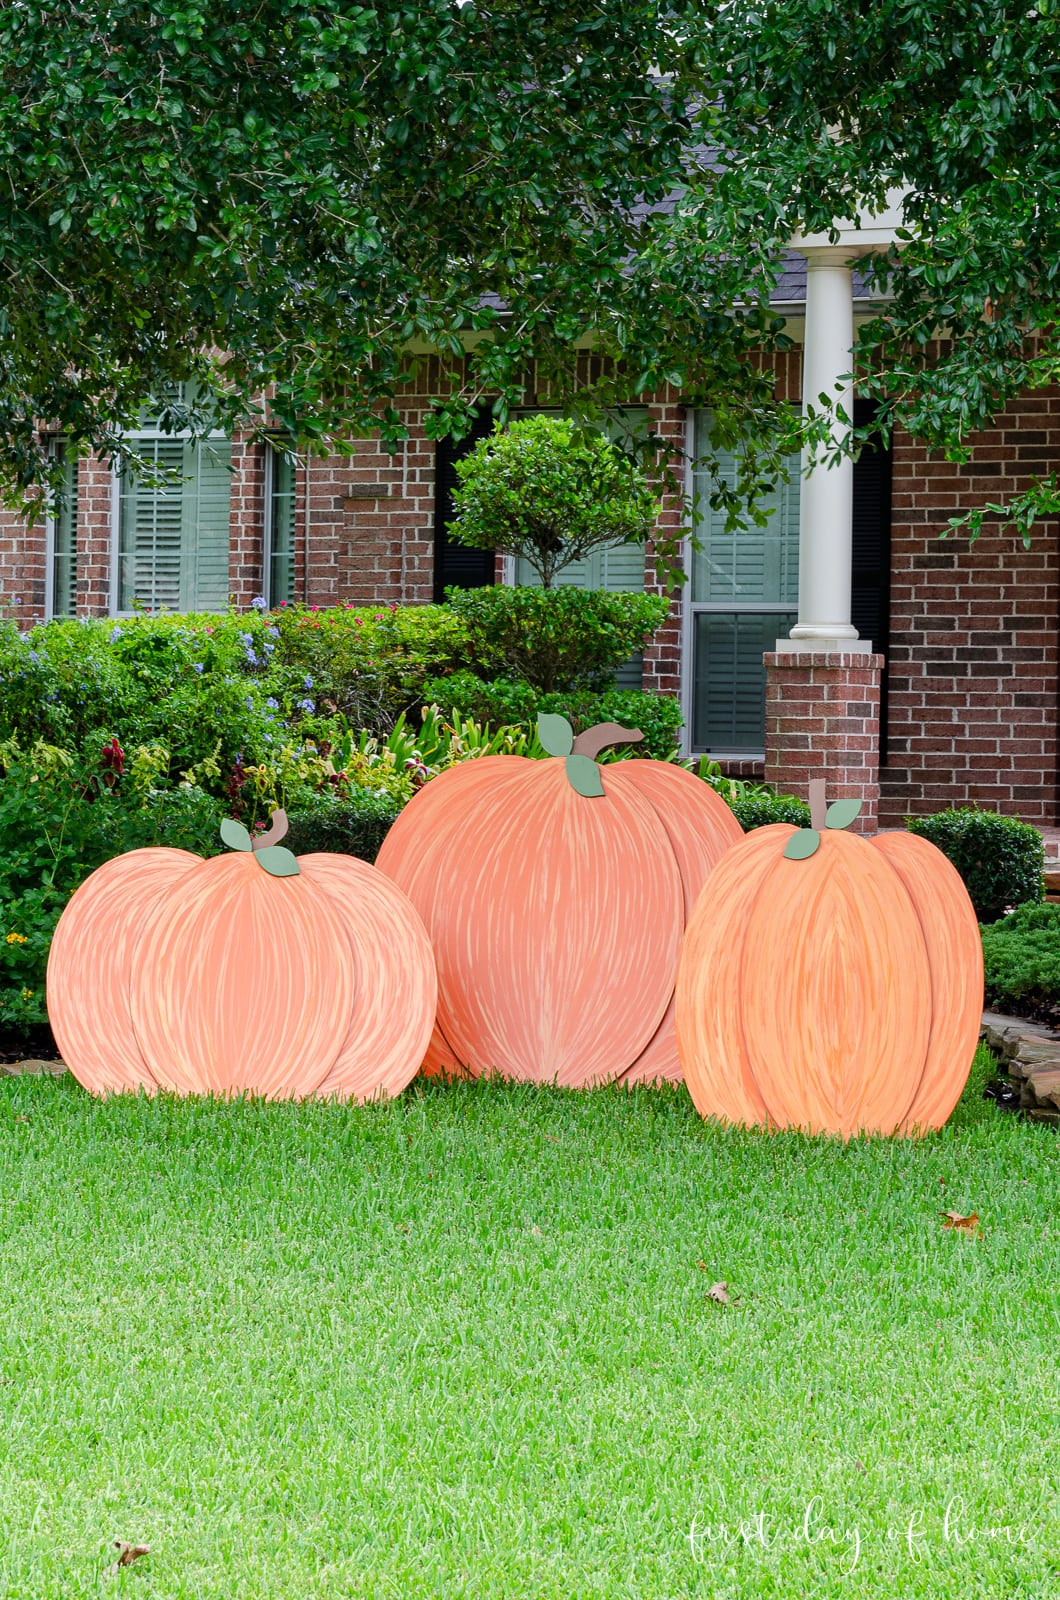 Three orange painted wooden pumpkins sitting on front yard as decorations for fall